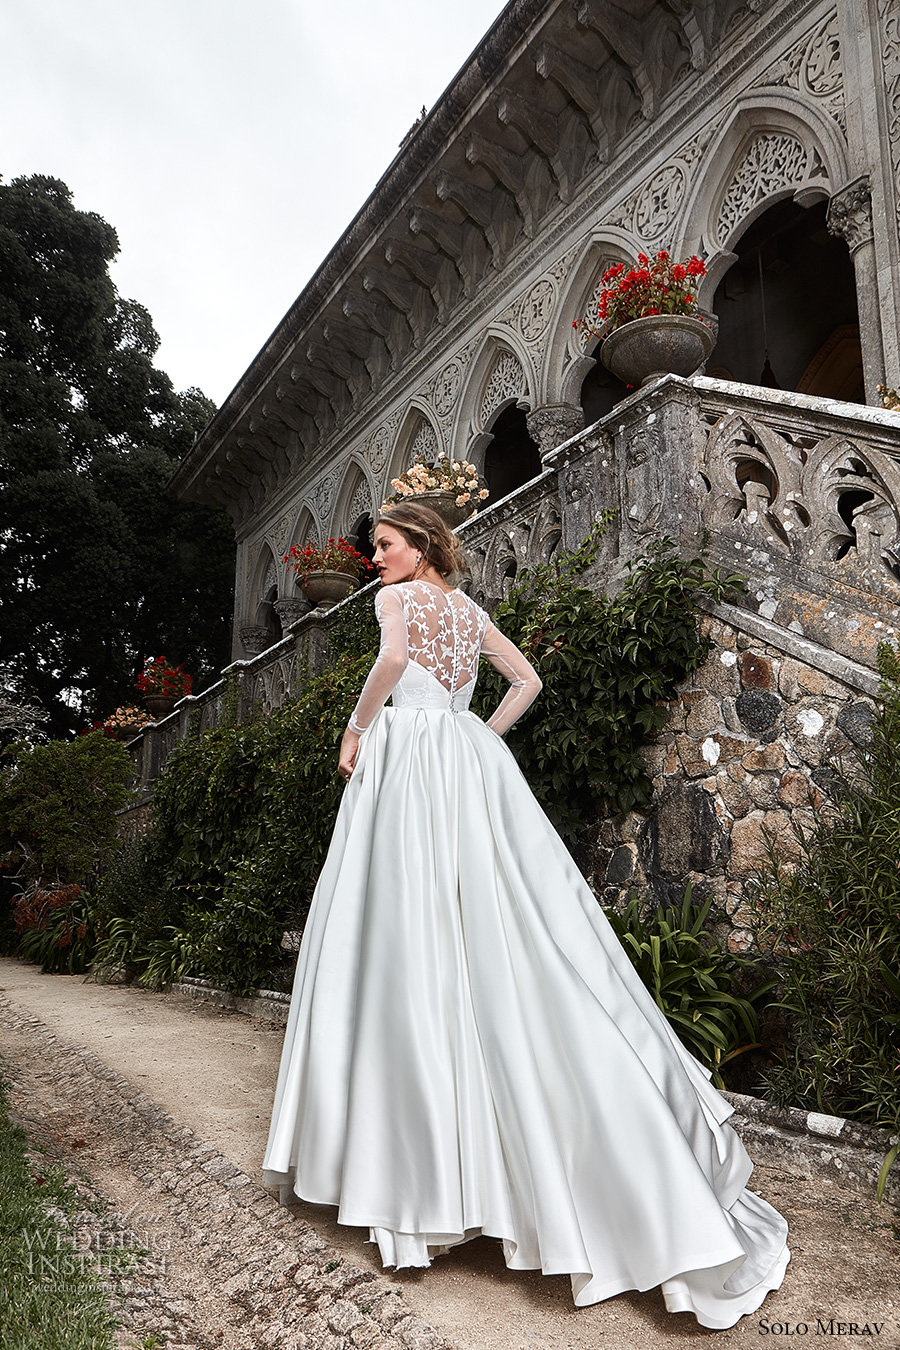 solo merav 2017 bridal long sleeves illusion jewel sweetheart neckline heavily embellished bodice satin skirt princess ball gown a  line wedding dress illusion back chapel train (camila) bv